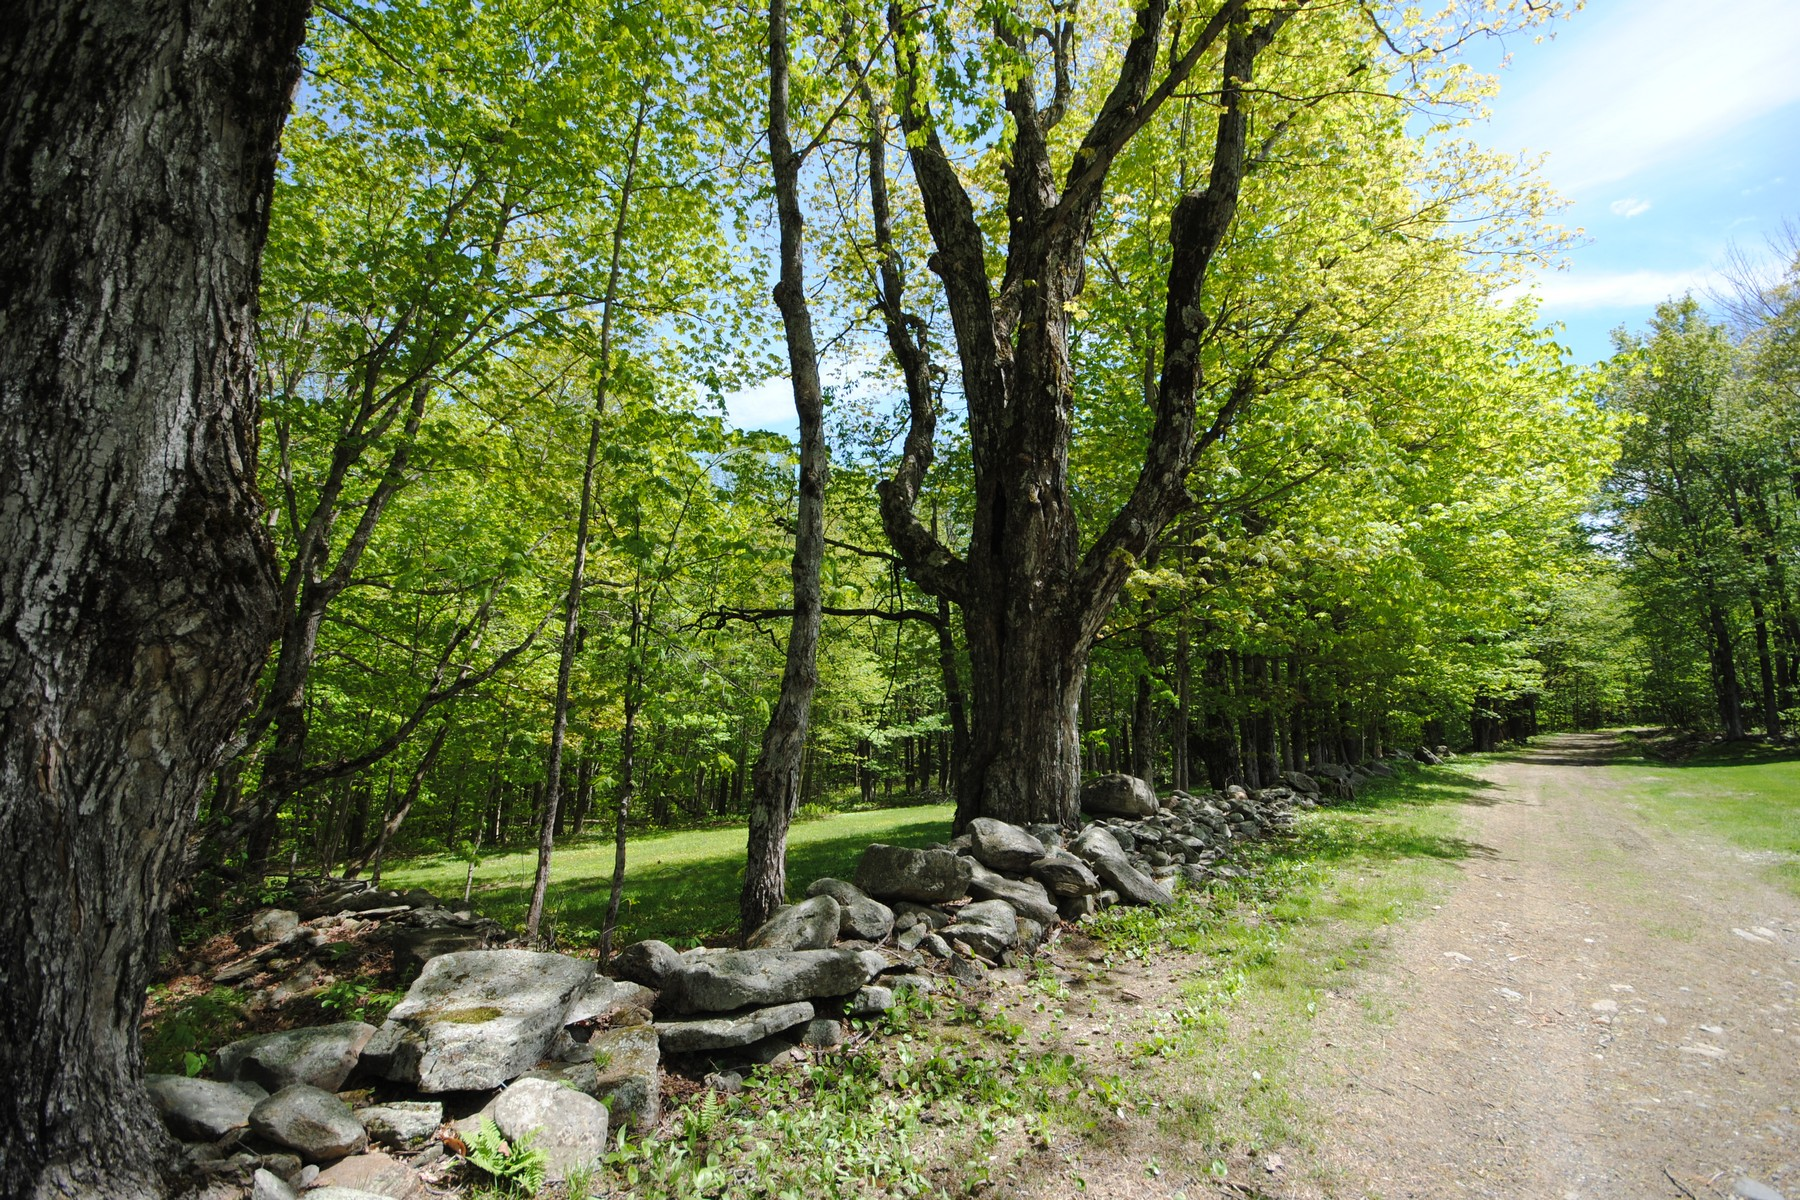 Land for Sale at Beautiful Country Property Lot on Fuller Hill Rd Whitingham, Vermont 05361 United States